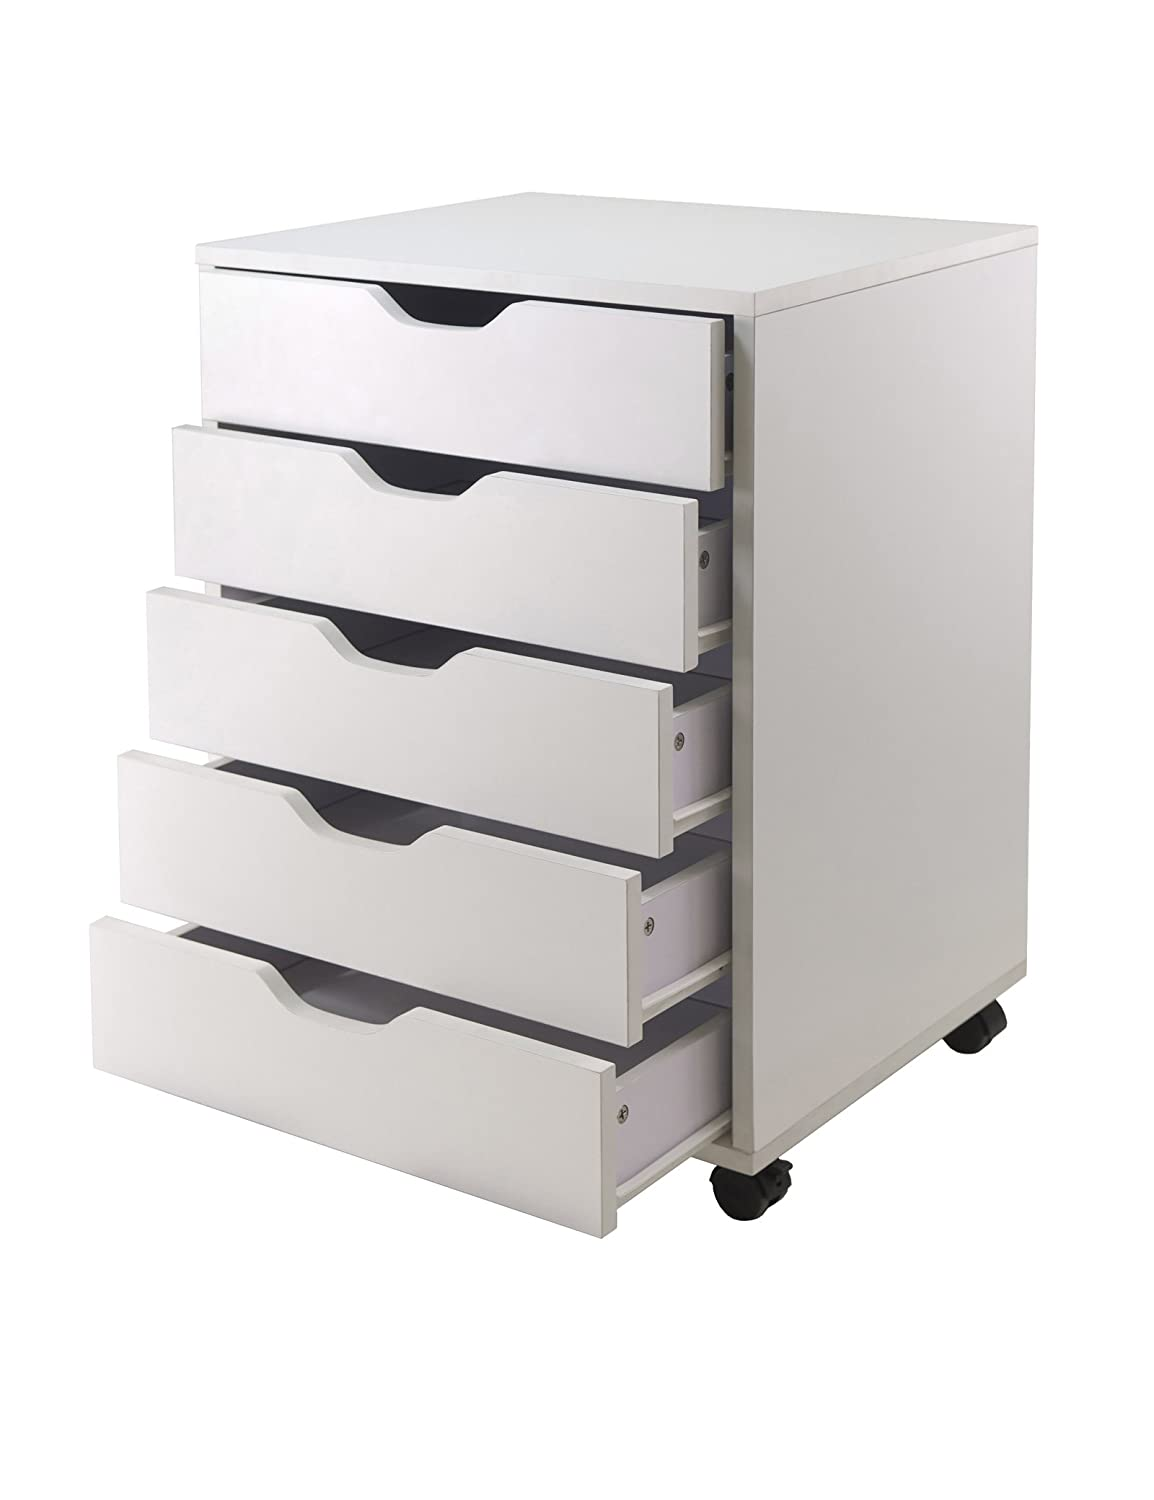 Ordinaire Amazon.com: Winsome Halifax Cabinet For Closet/Office, 5 Drawers, White:  Kitchen U0026 Dining